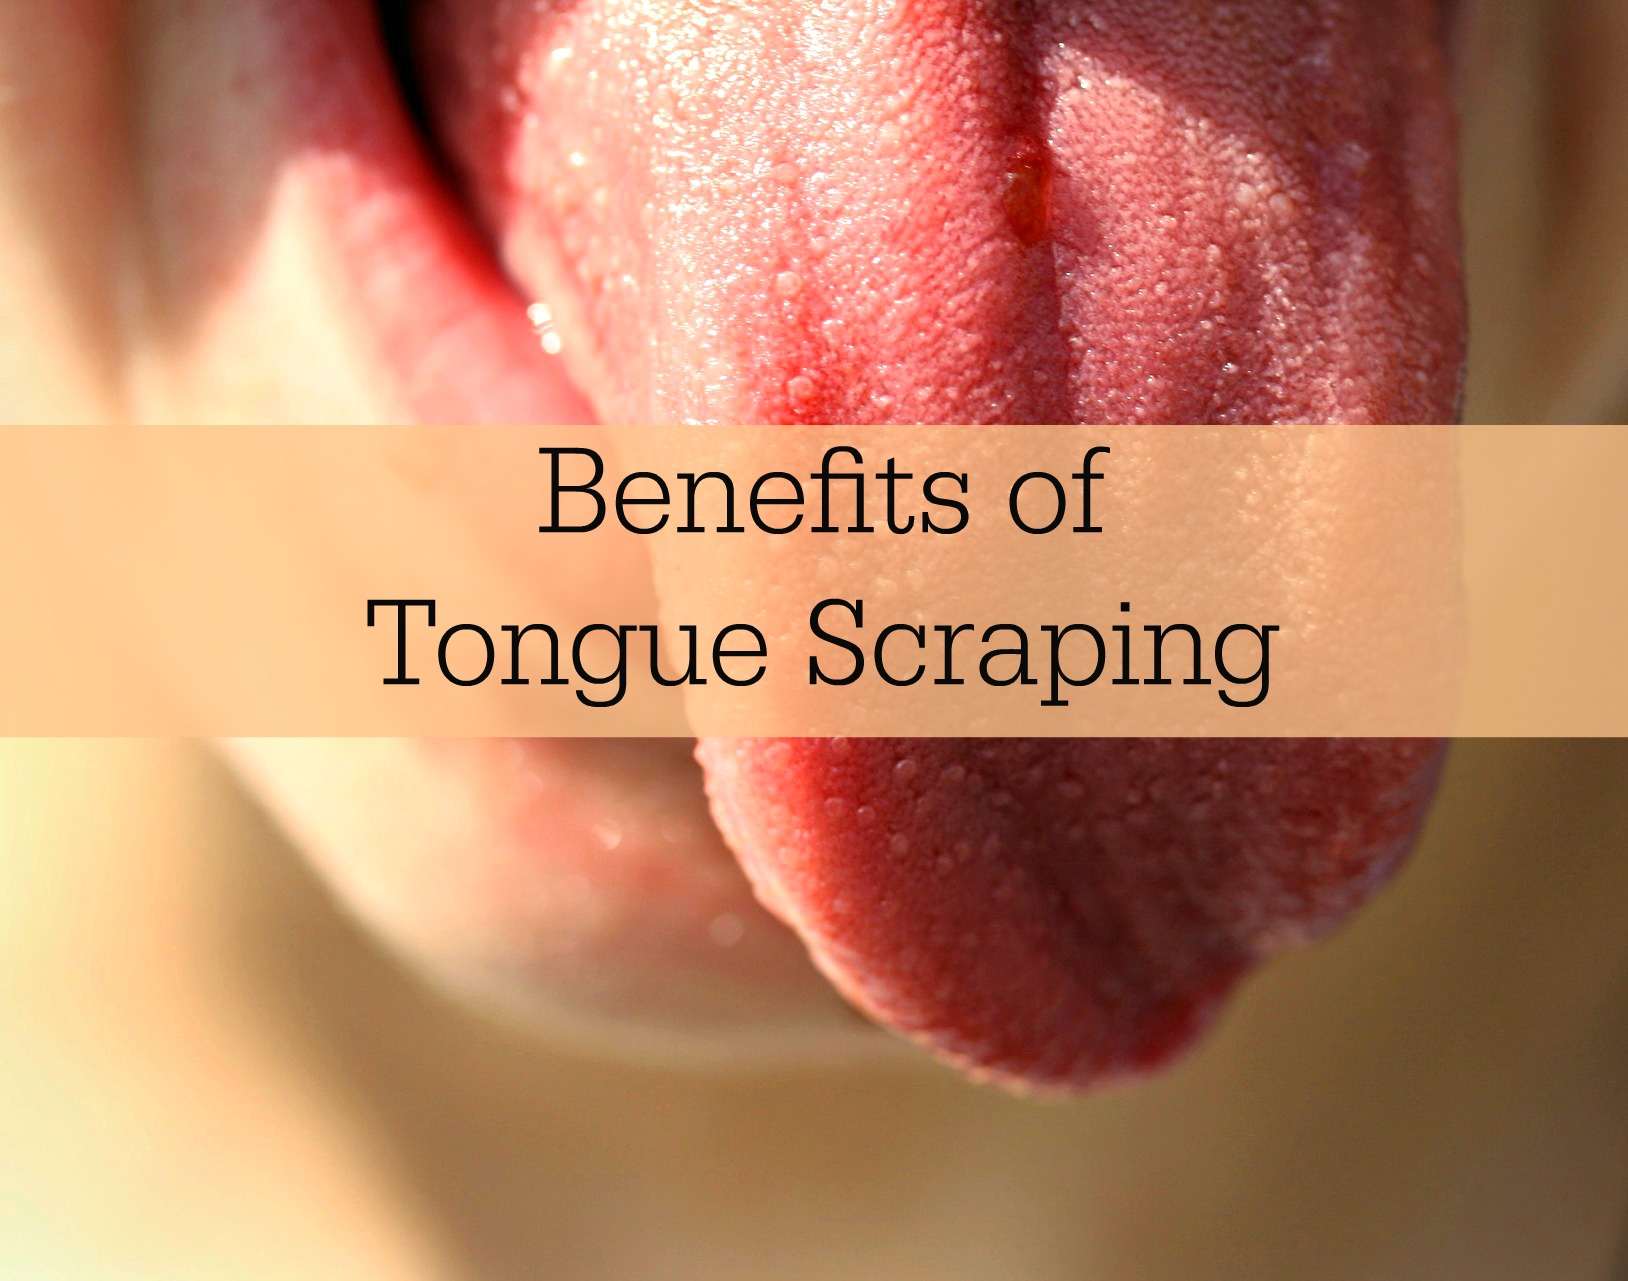 Benefits of Tongue Scraping